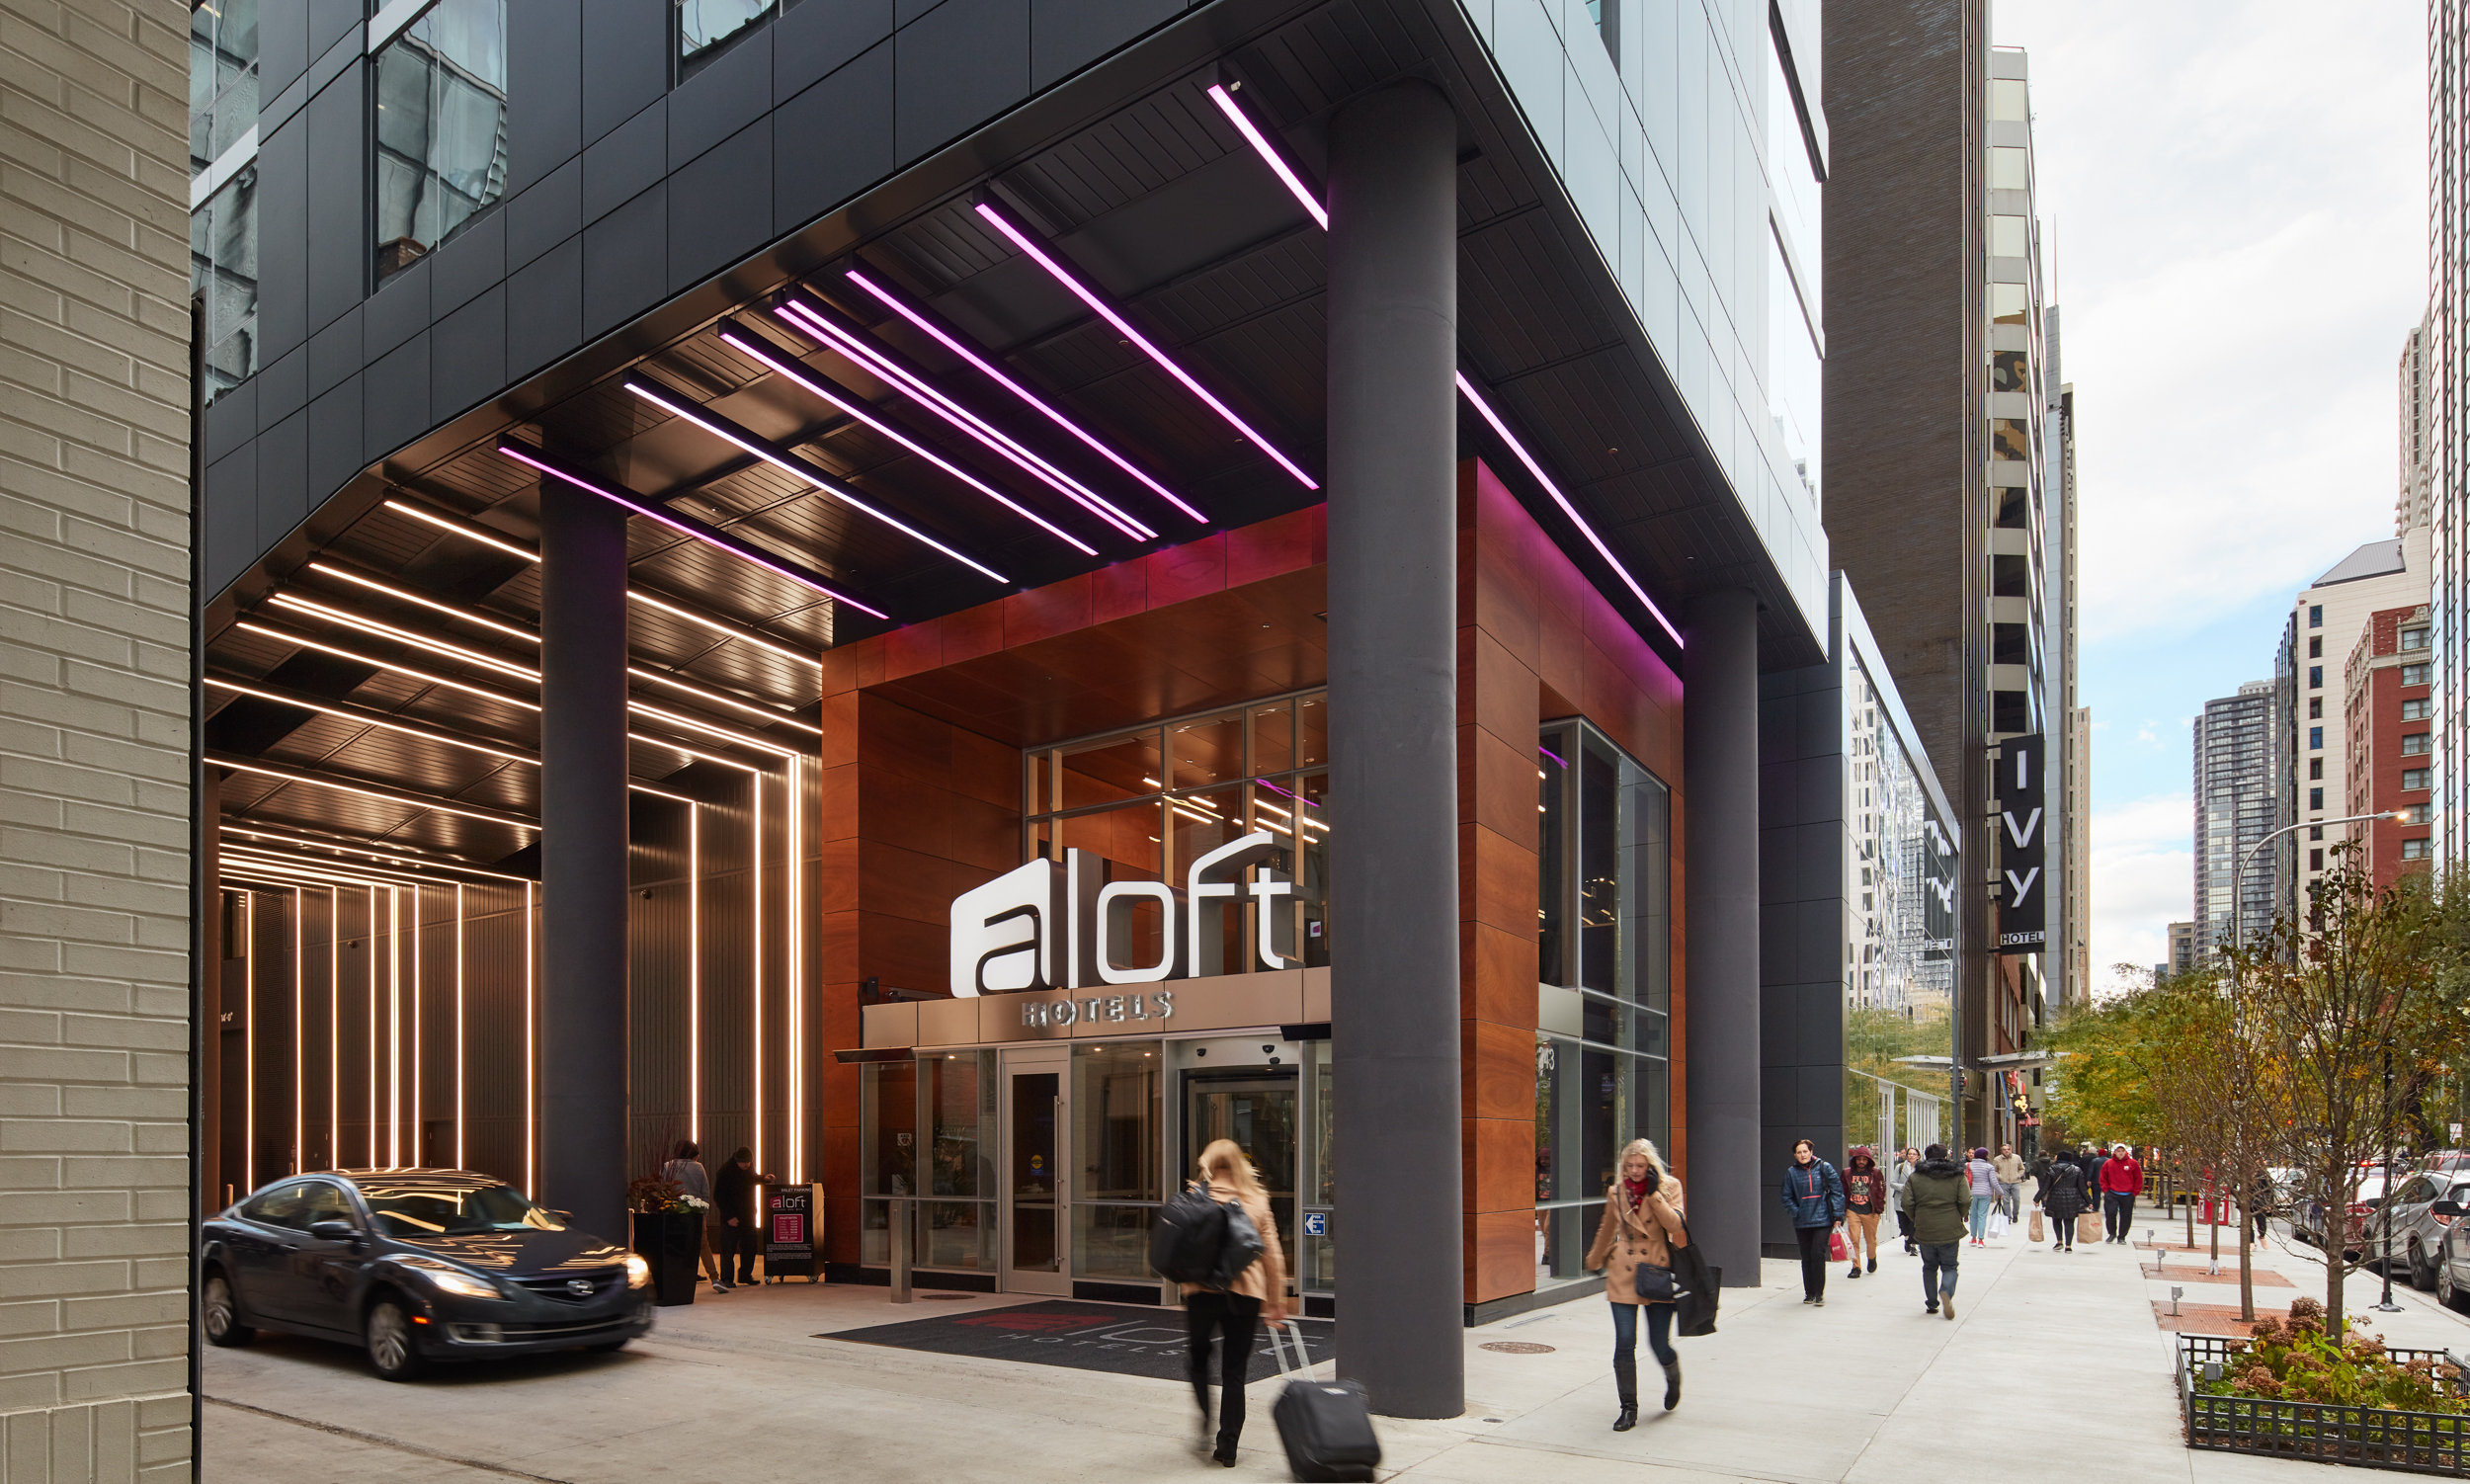 Aloft Hotel Magnificent Mile, Chicago, IL (Photo by Steve Hall)